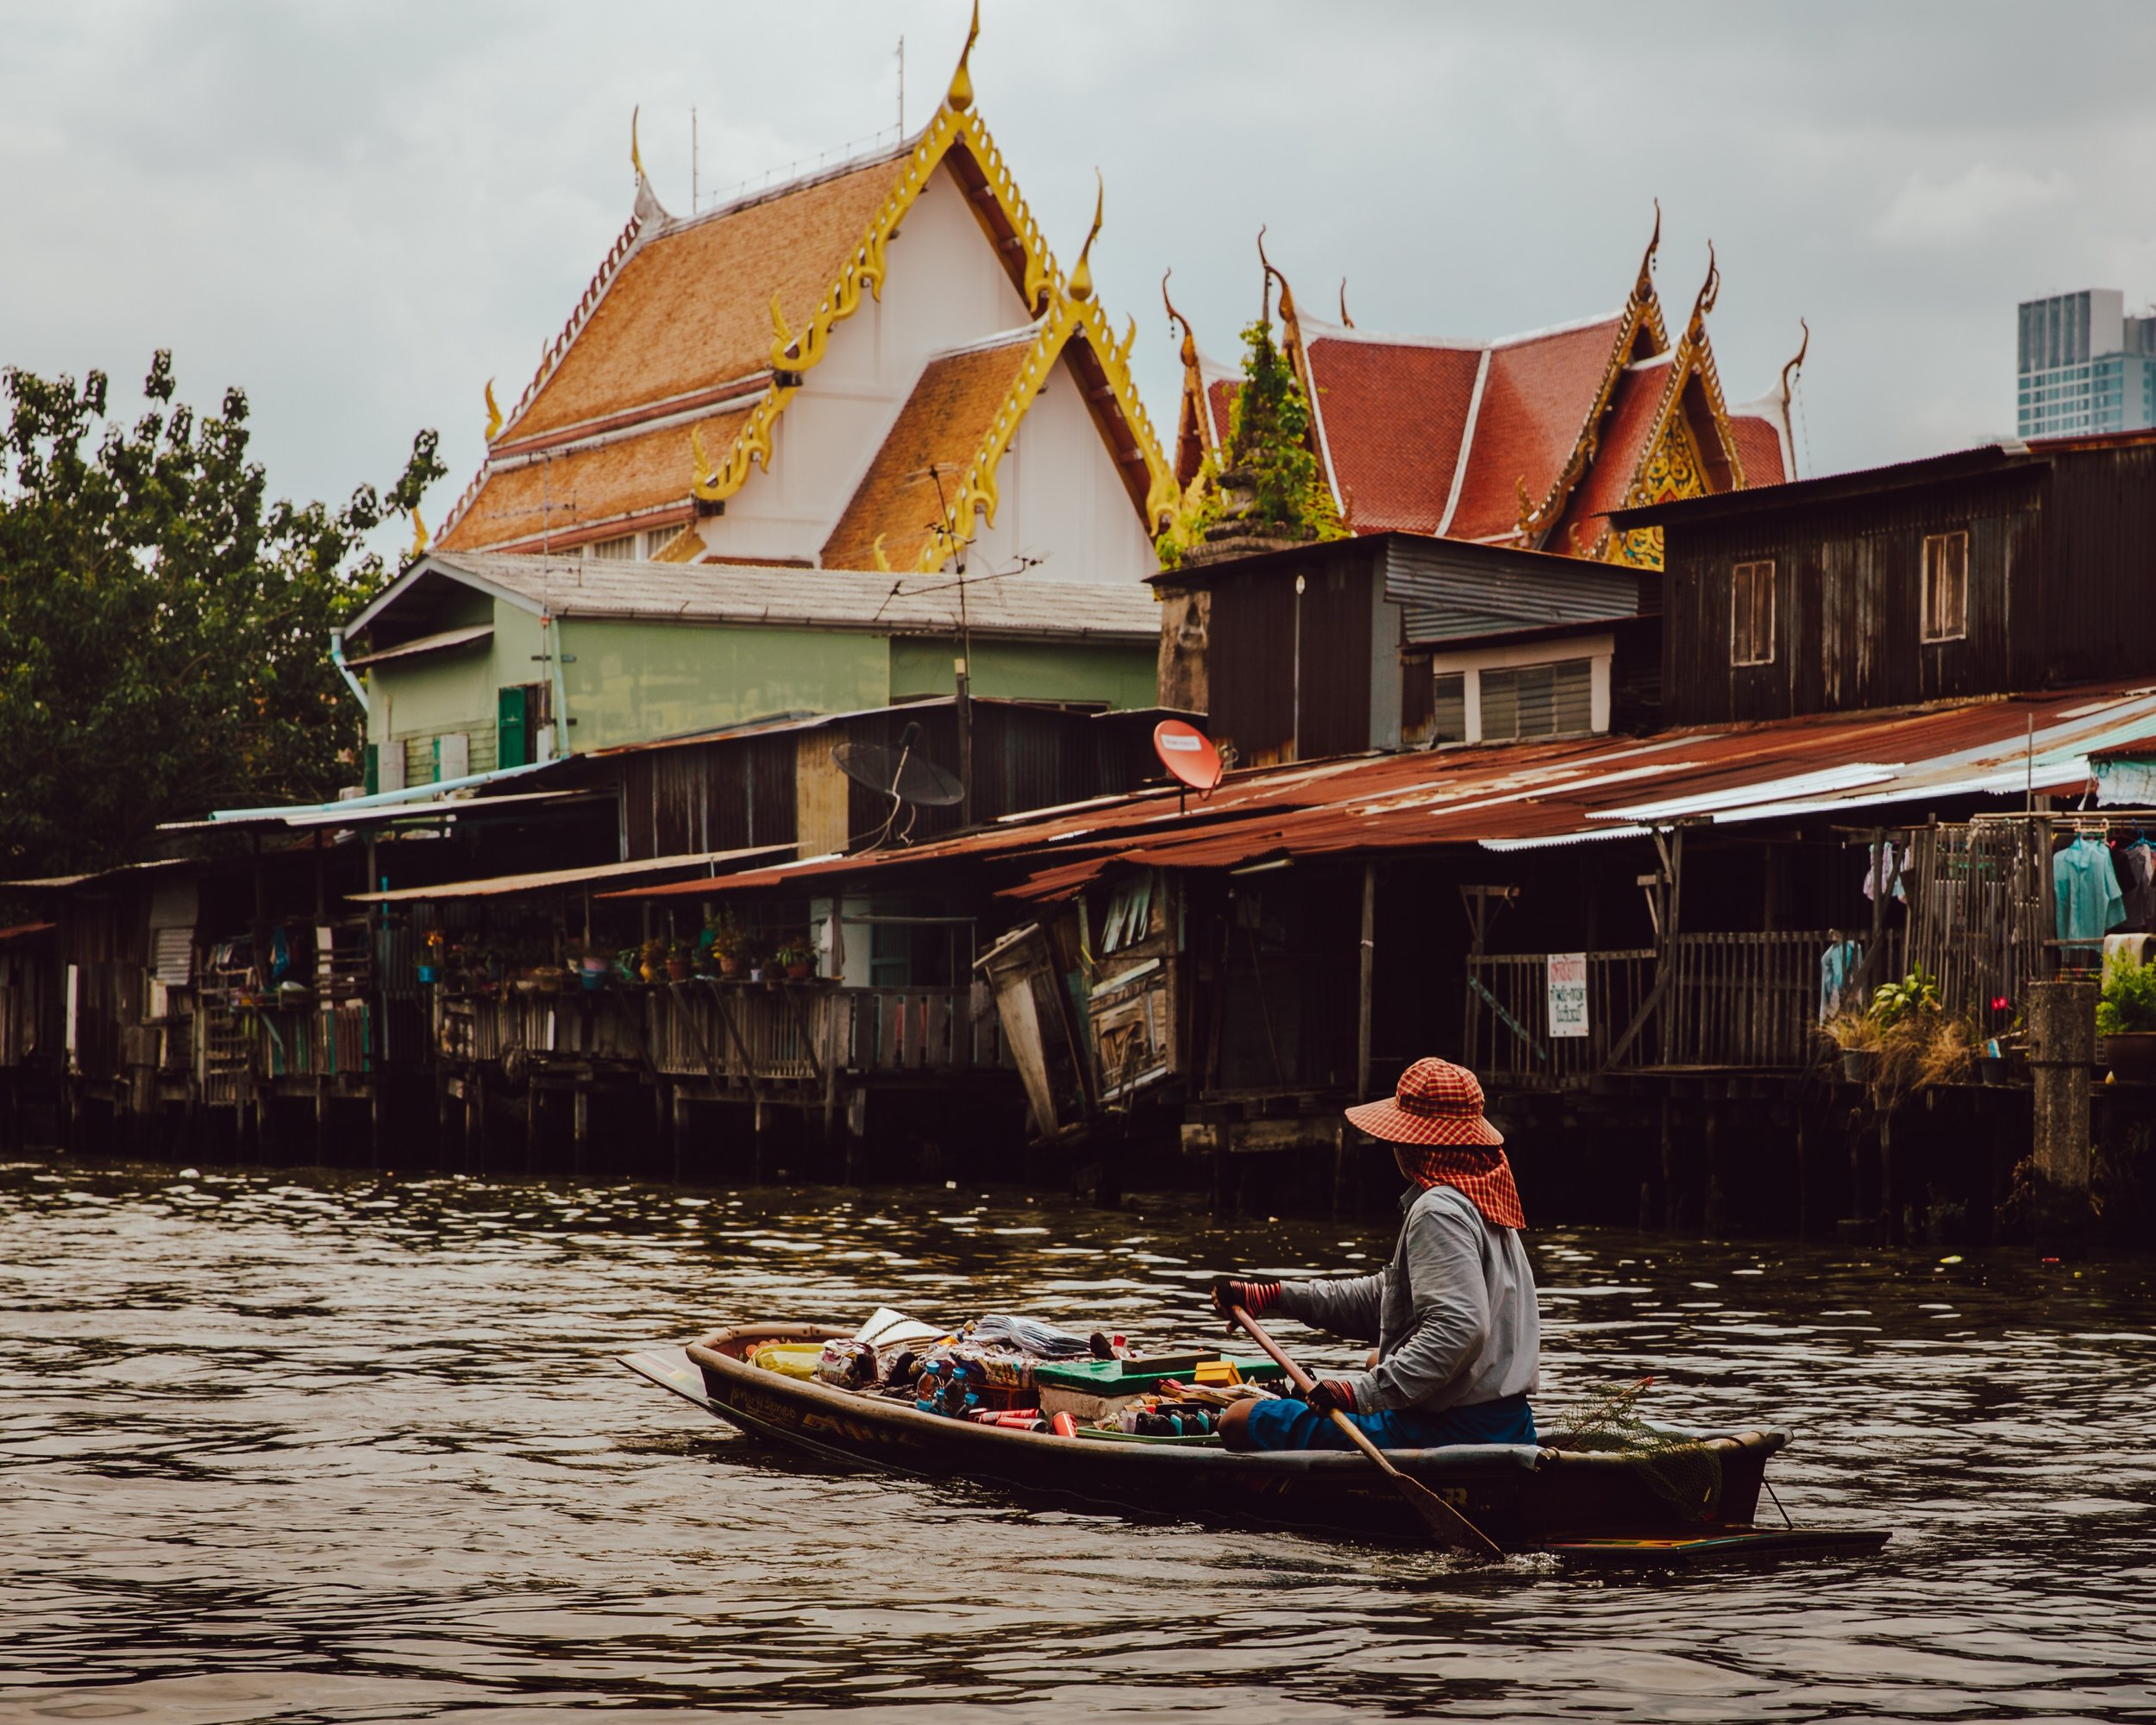 Come meet the incredible people of Thailand. - starting from $4,500 for 12 days